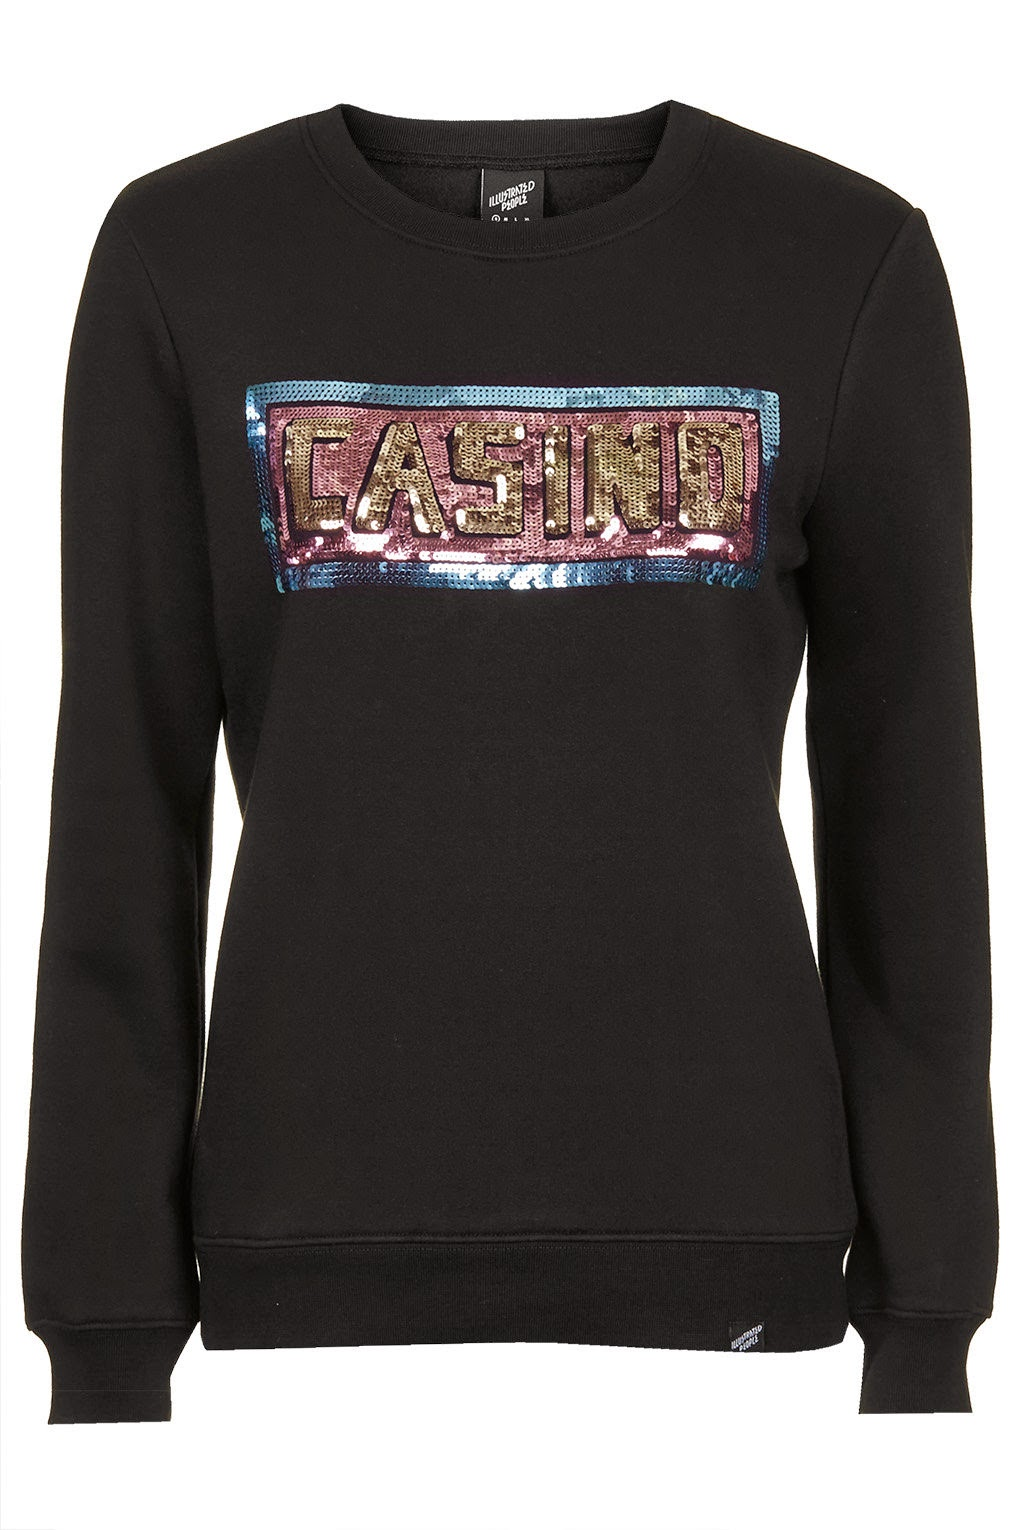 casino jumper, sequin illustrated people sweater,